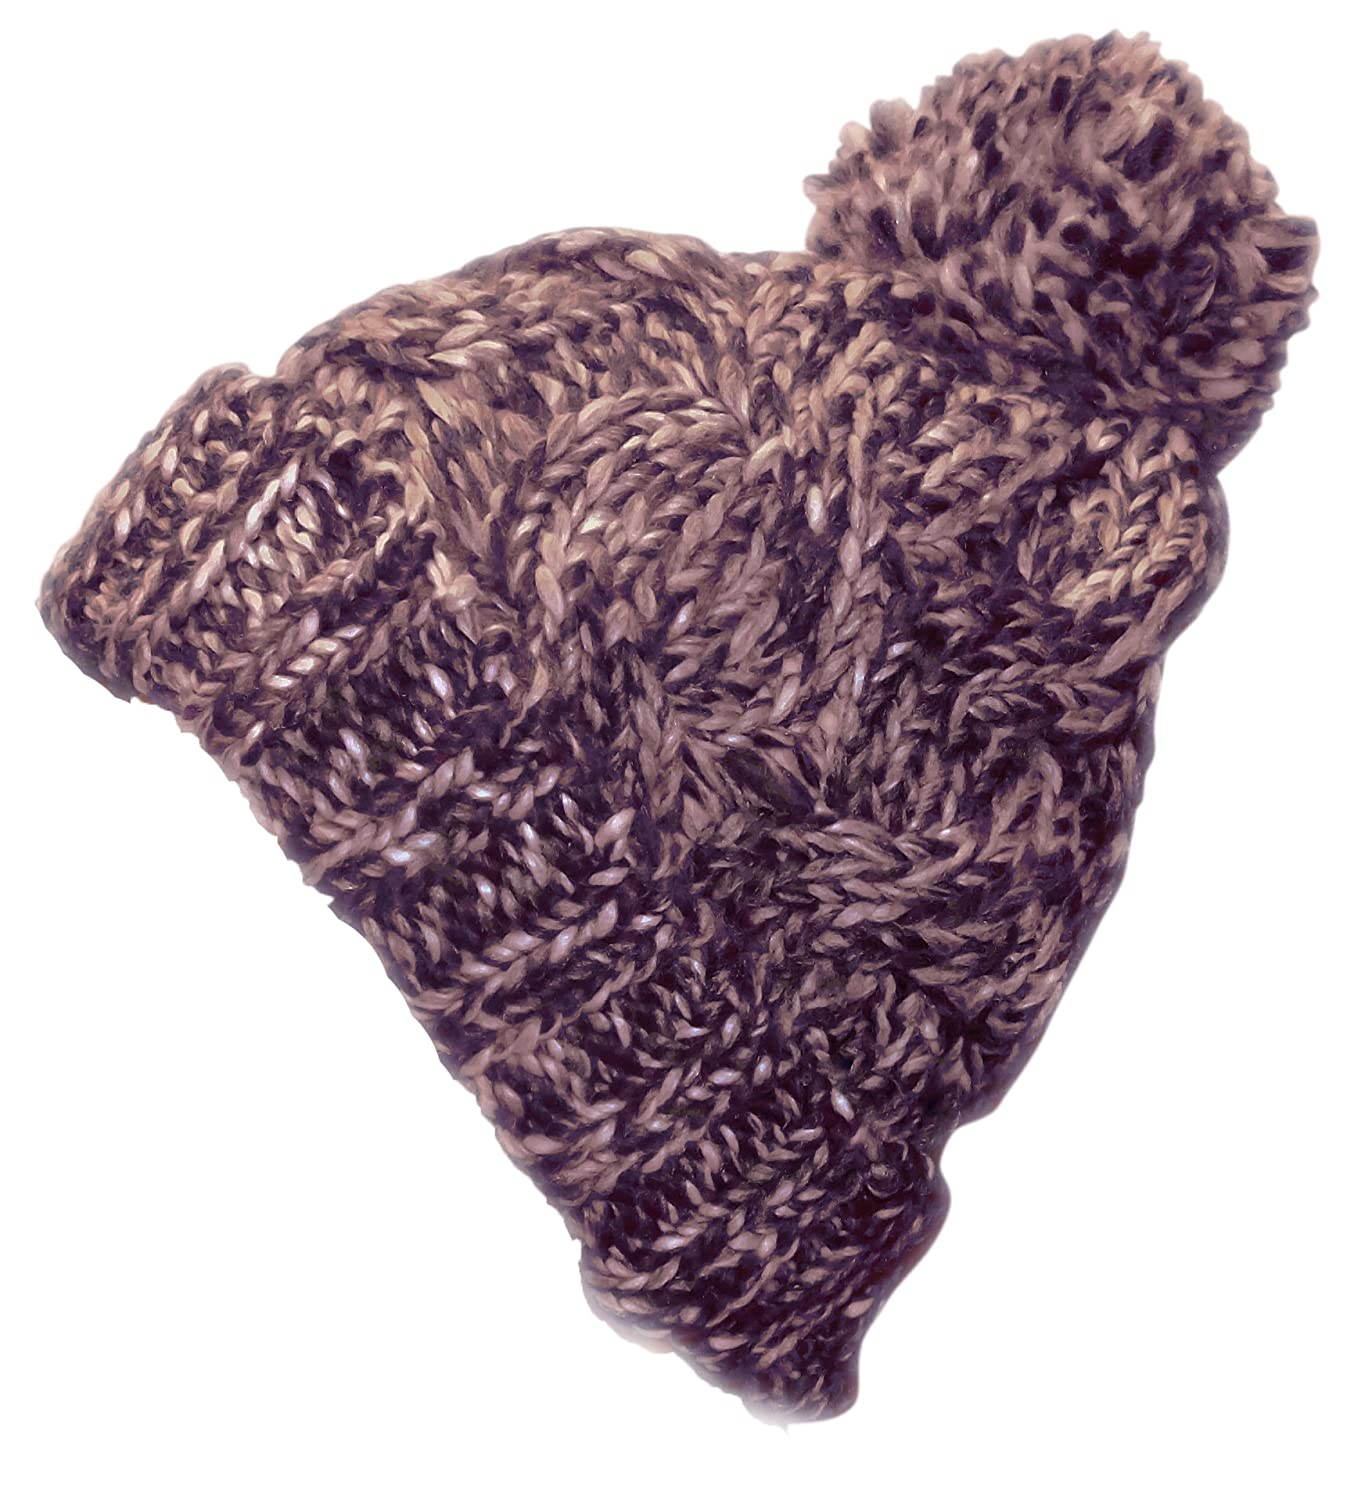 a6c41a6d84e Peach Couture Knitted Cozy Warm Winter Boho Slouch Snowboarding Ski Hat  Brown Red Combo at Amazon Women s Clothing store